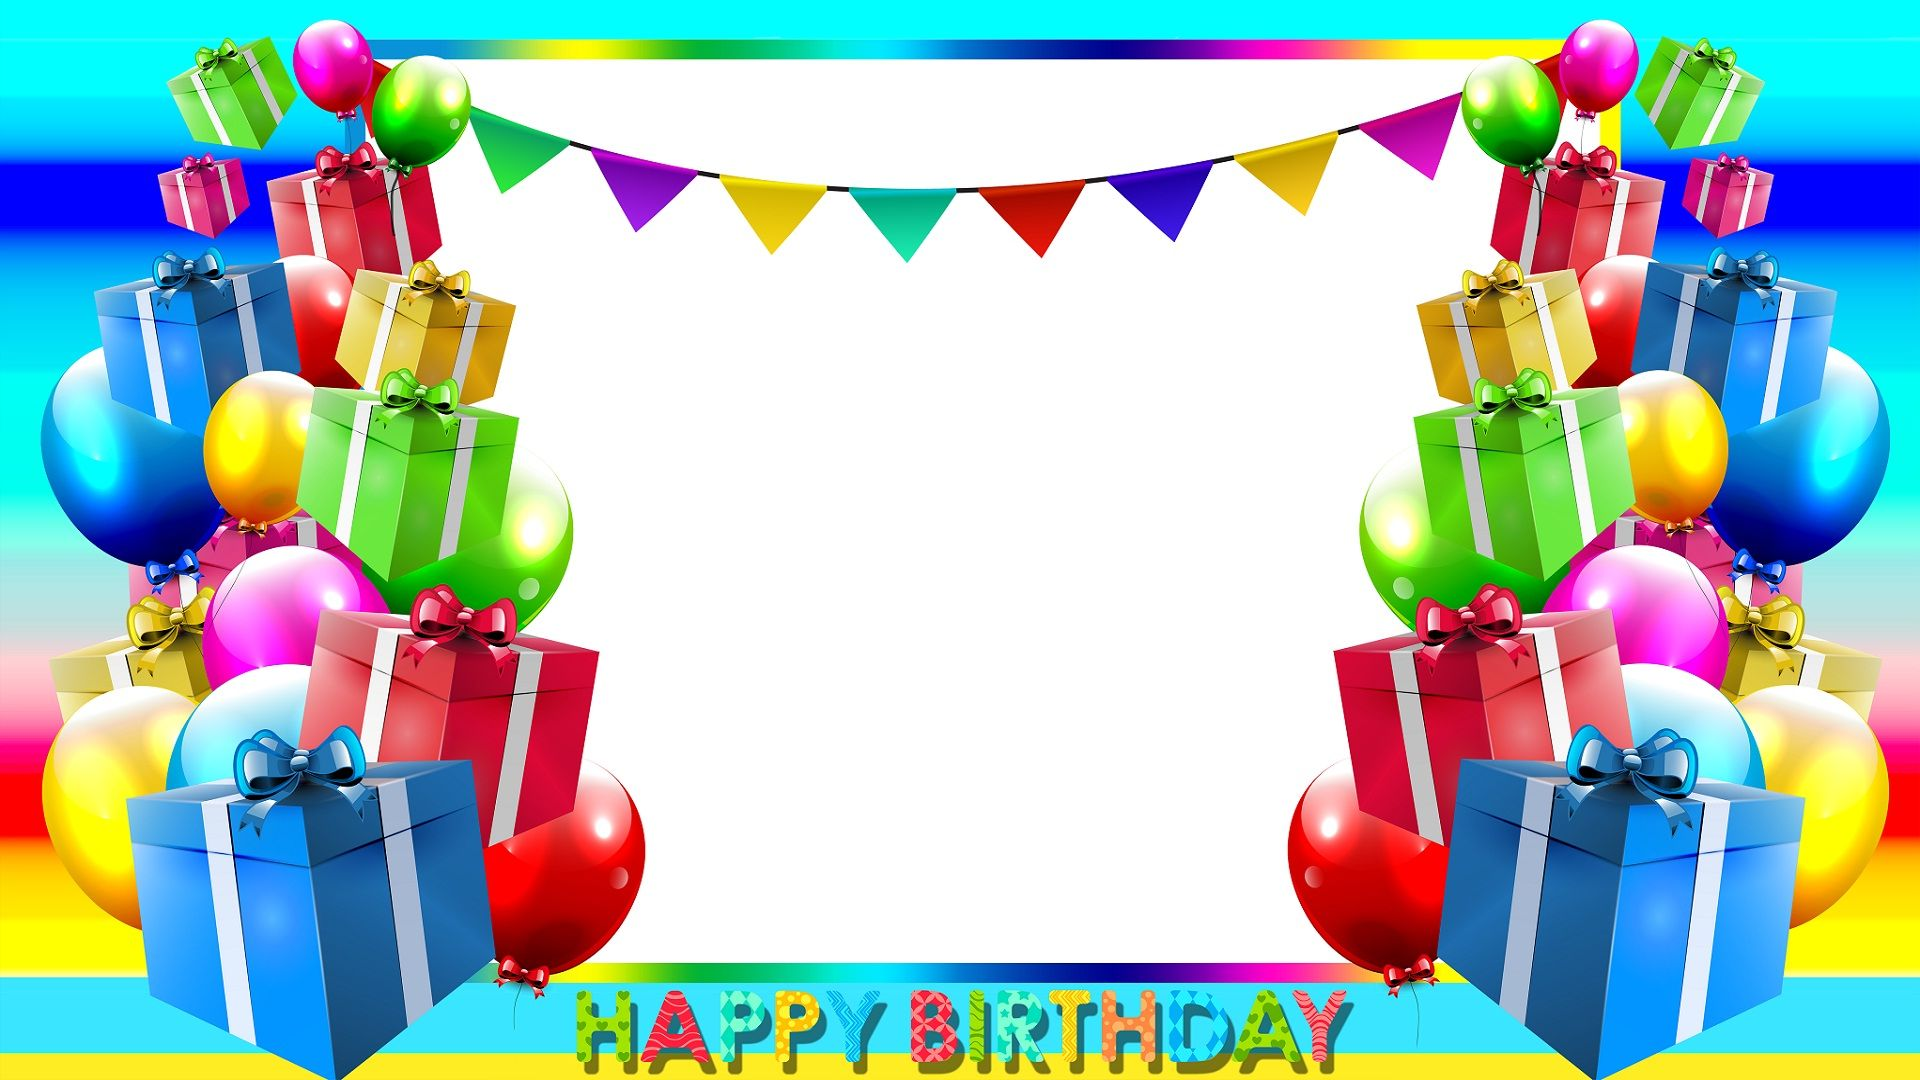 Image Result For Birthday Wish Frame Png Happy Birthday Png Happy Birthday Clip Art Happy Birthday Photos